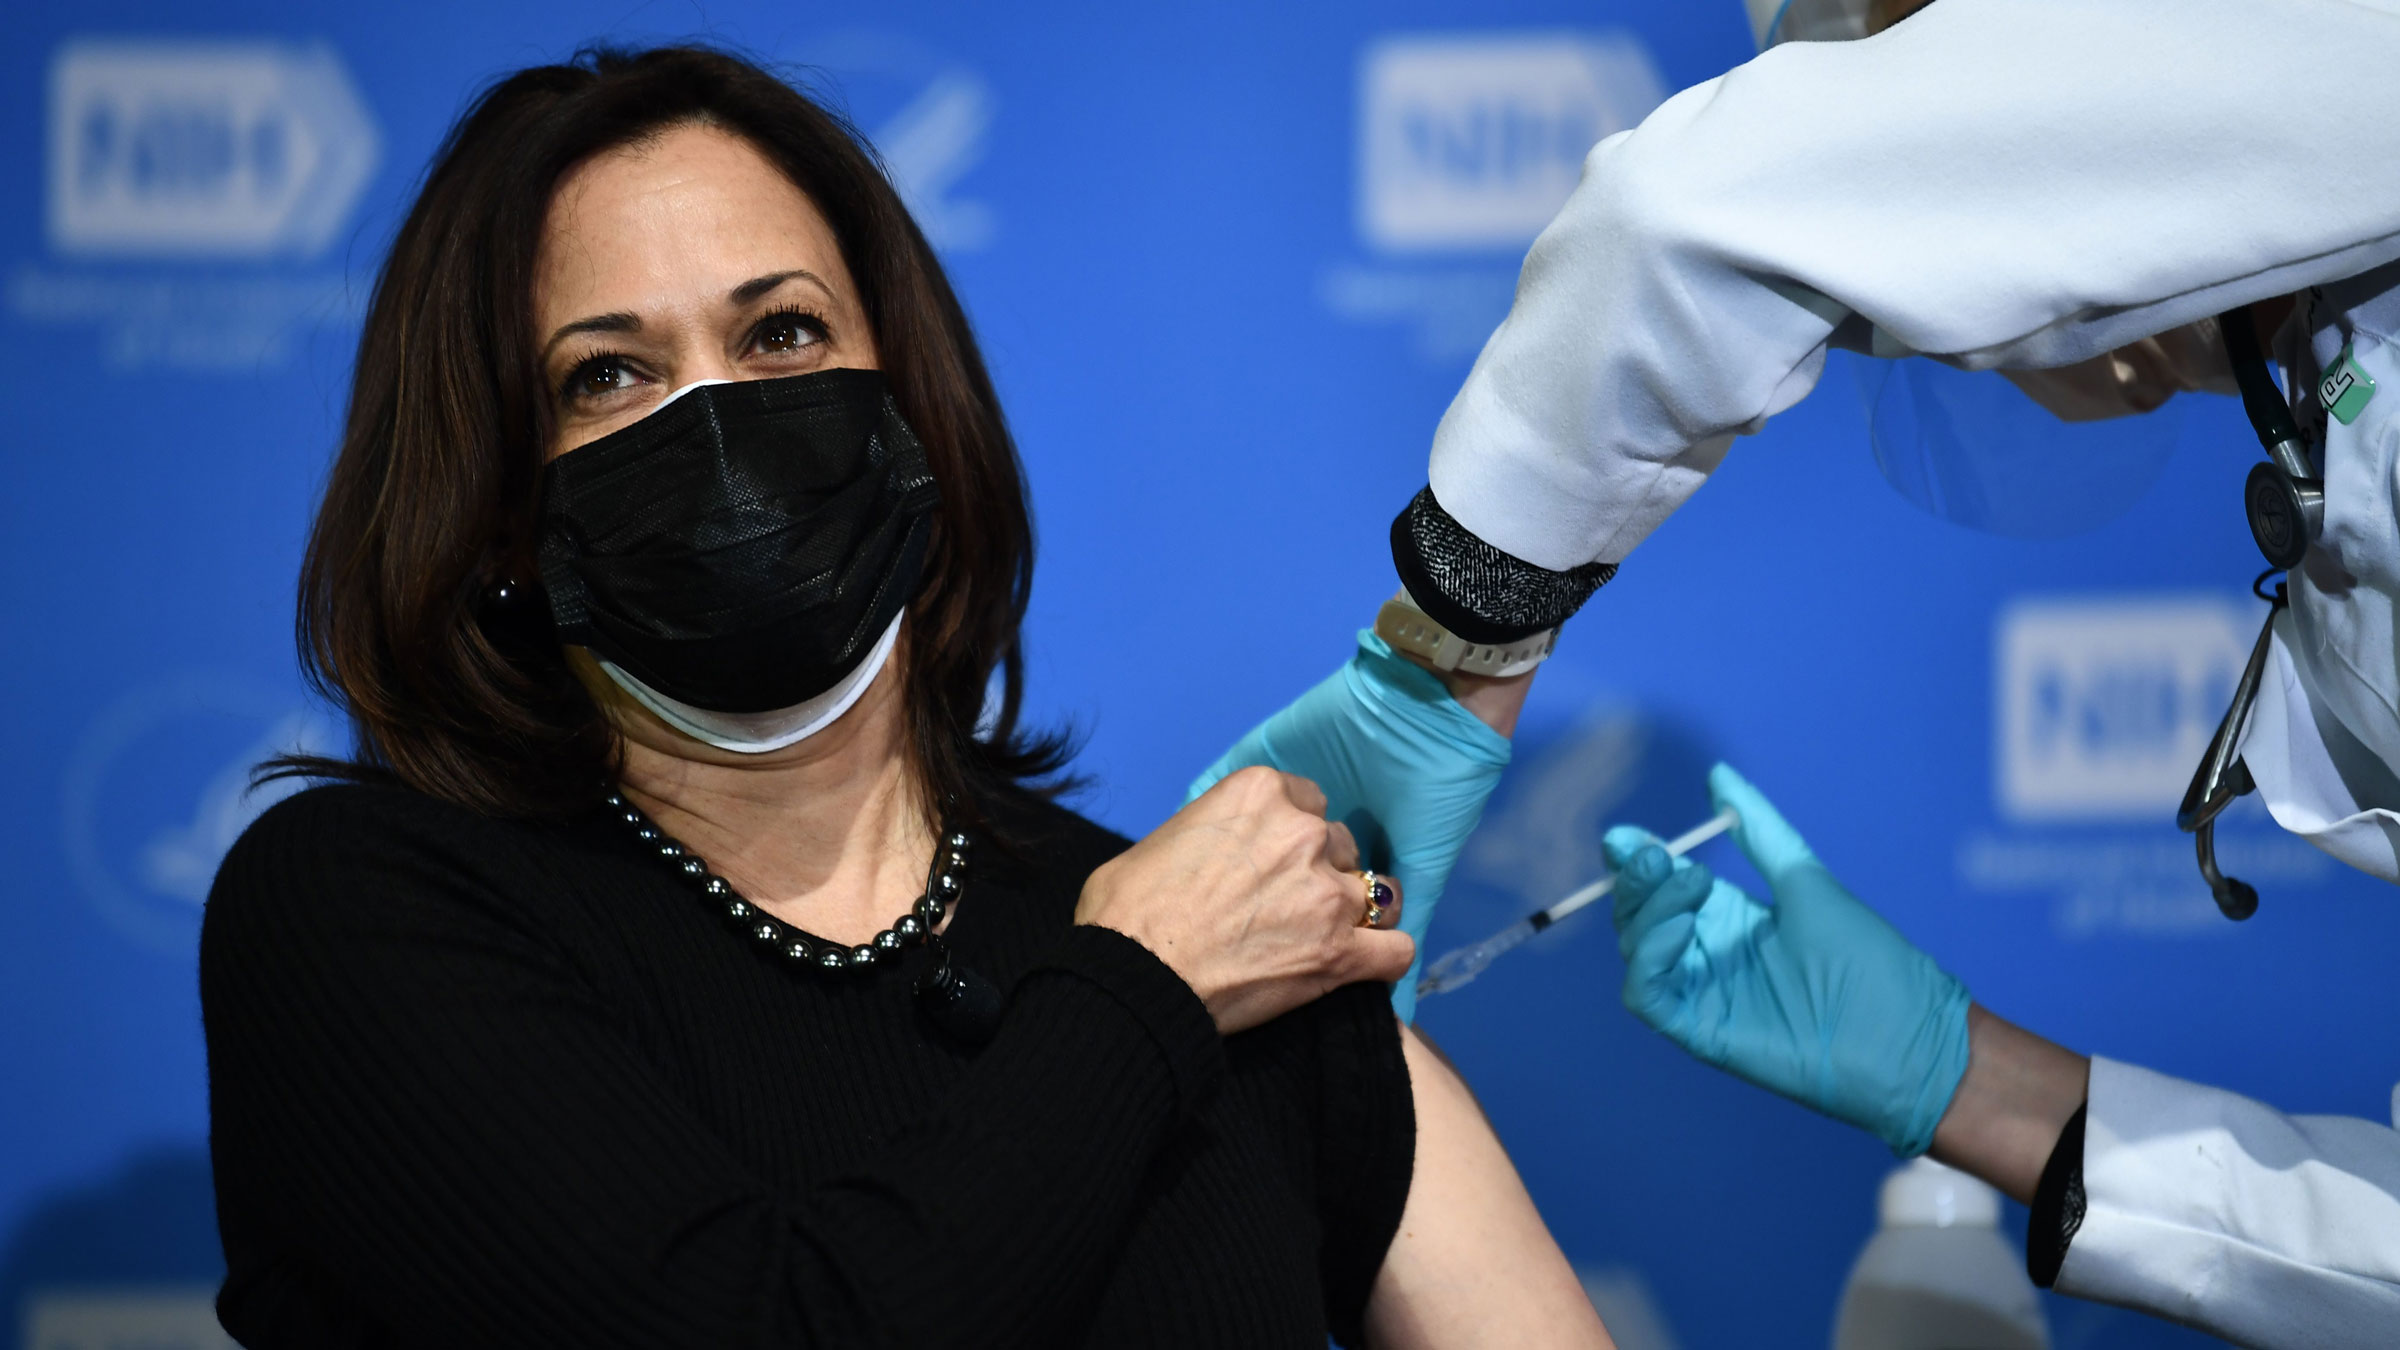 Vice President Kamala Harris receives her second dose of the Covid-19 vaccine.